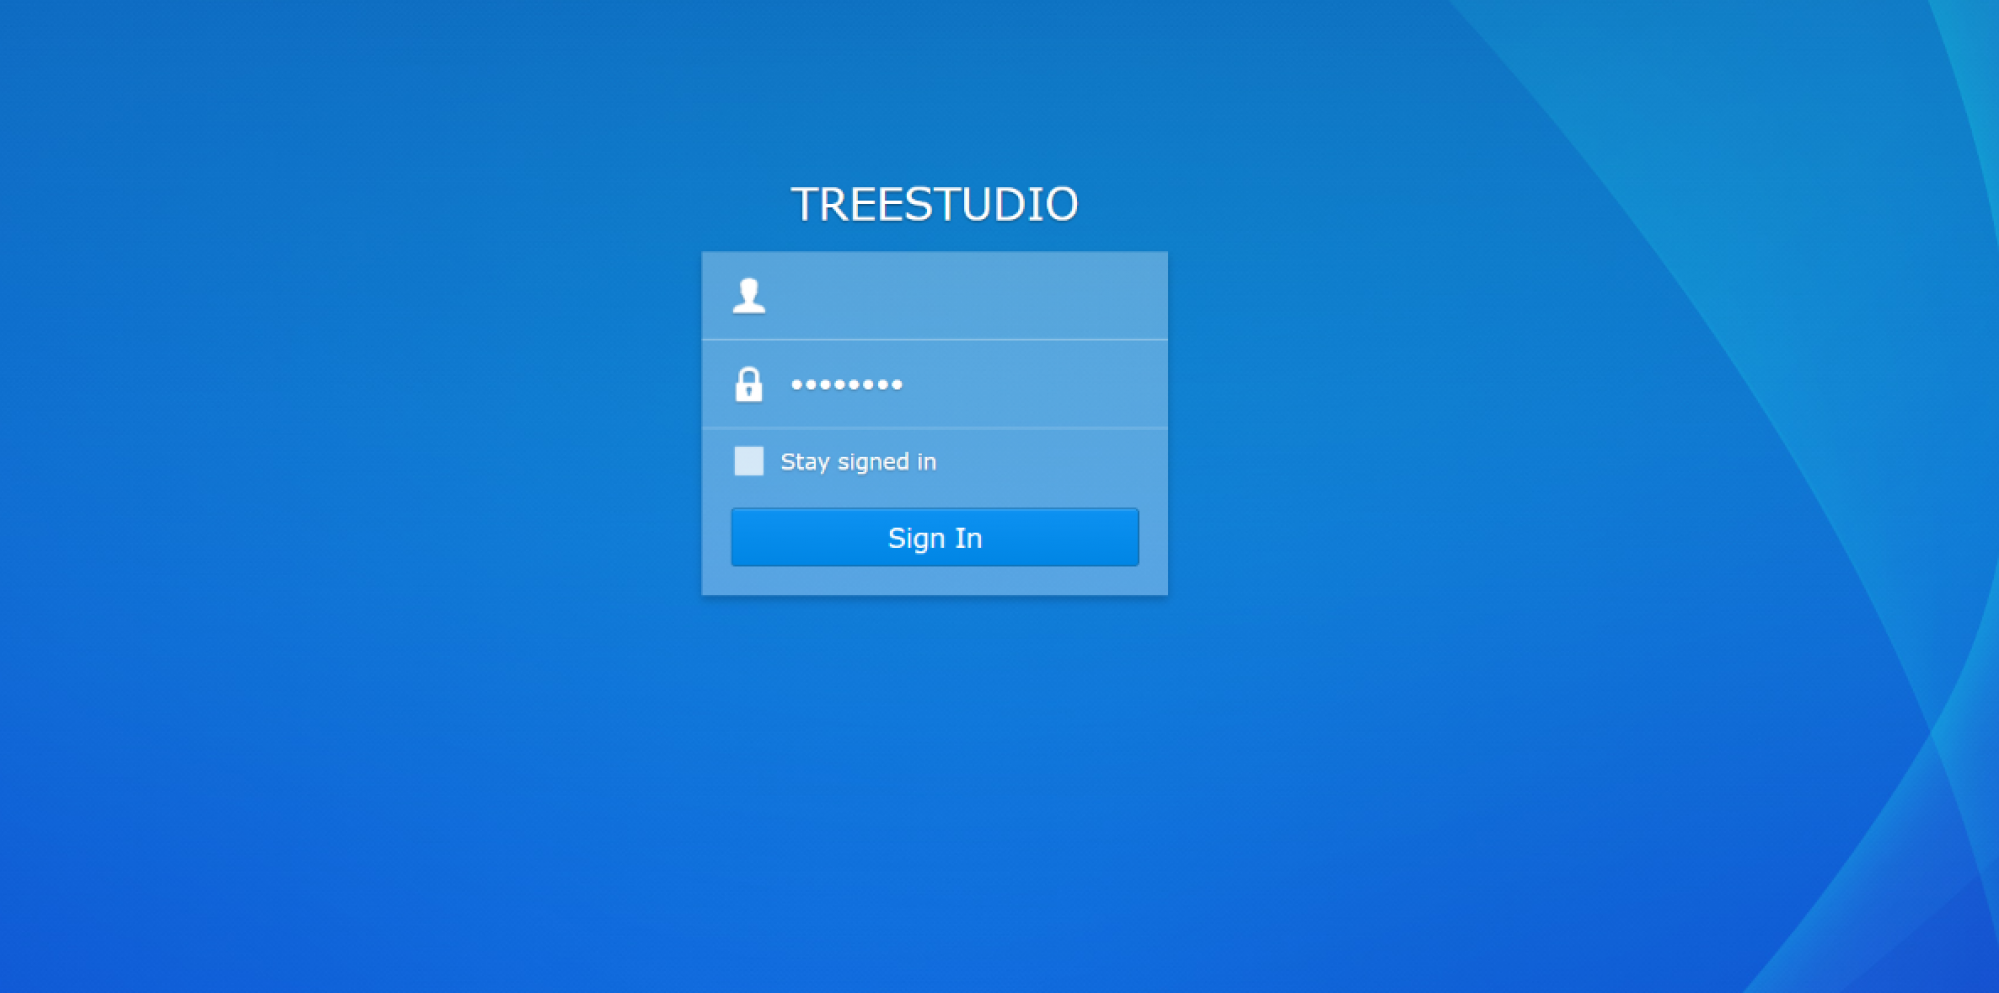 Complete guide on using tree studio's online cloud to view wedding photography and video